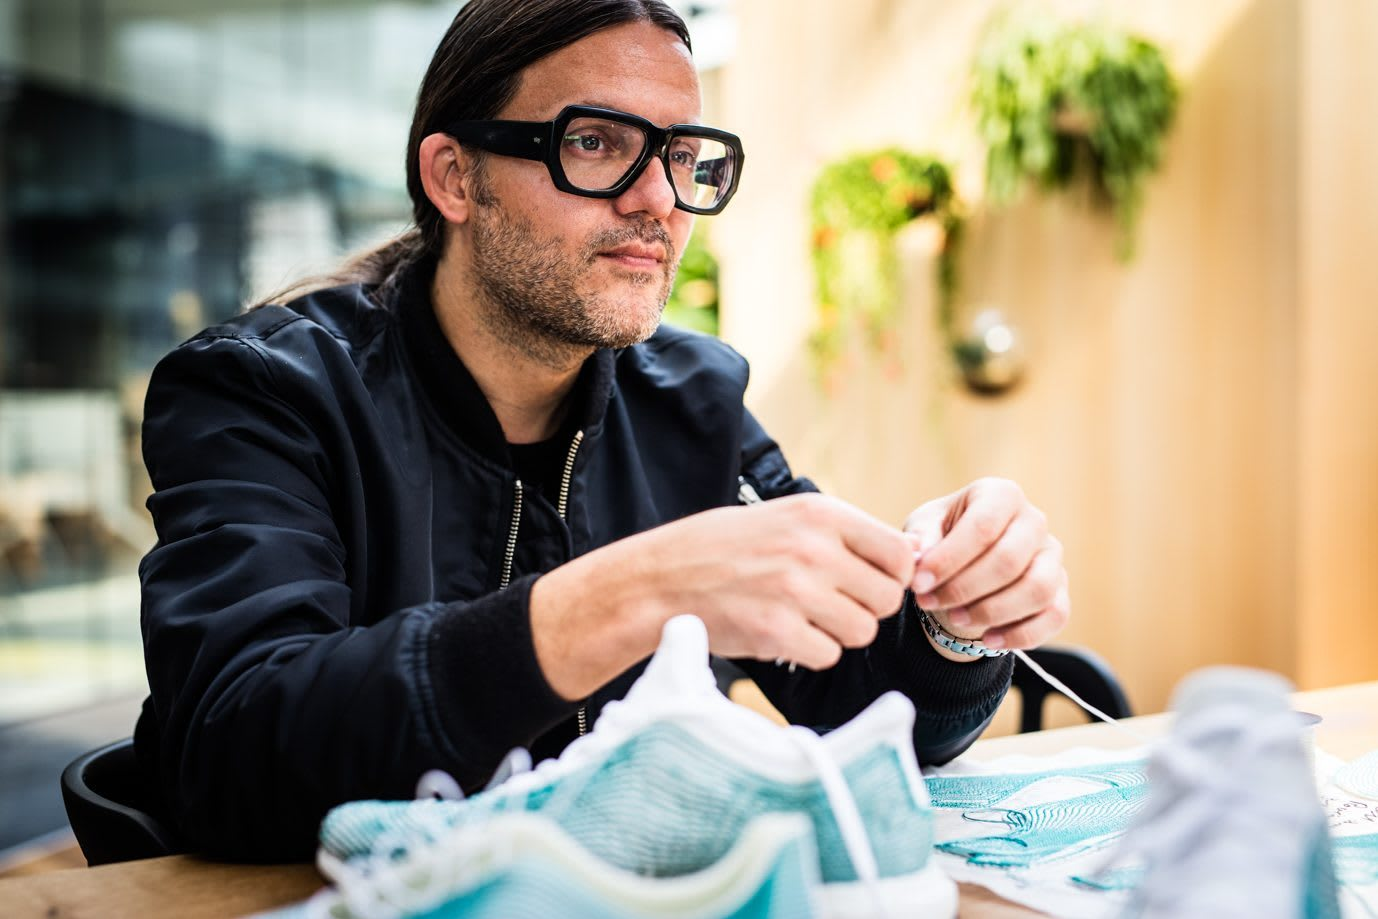 A man wearing big glasses sitting at a table with shoes and material made from ocean plastic in front of him. Finding your purpose in life, Purpose meaning, Purpose Definition, Define Purpose, GamePlan A